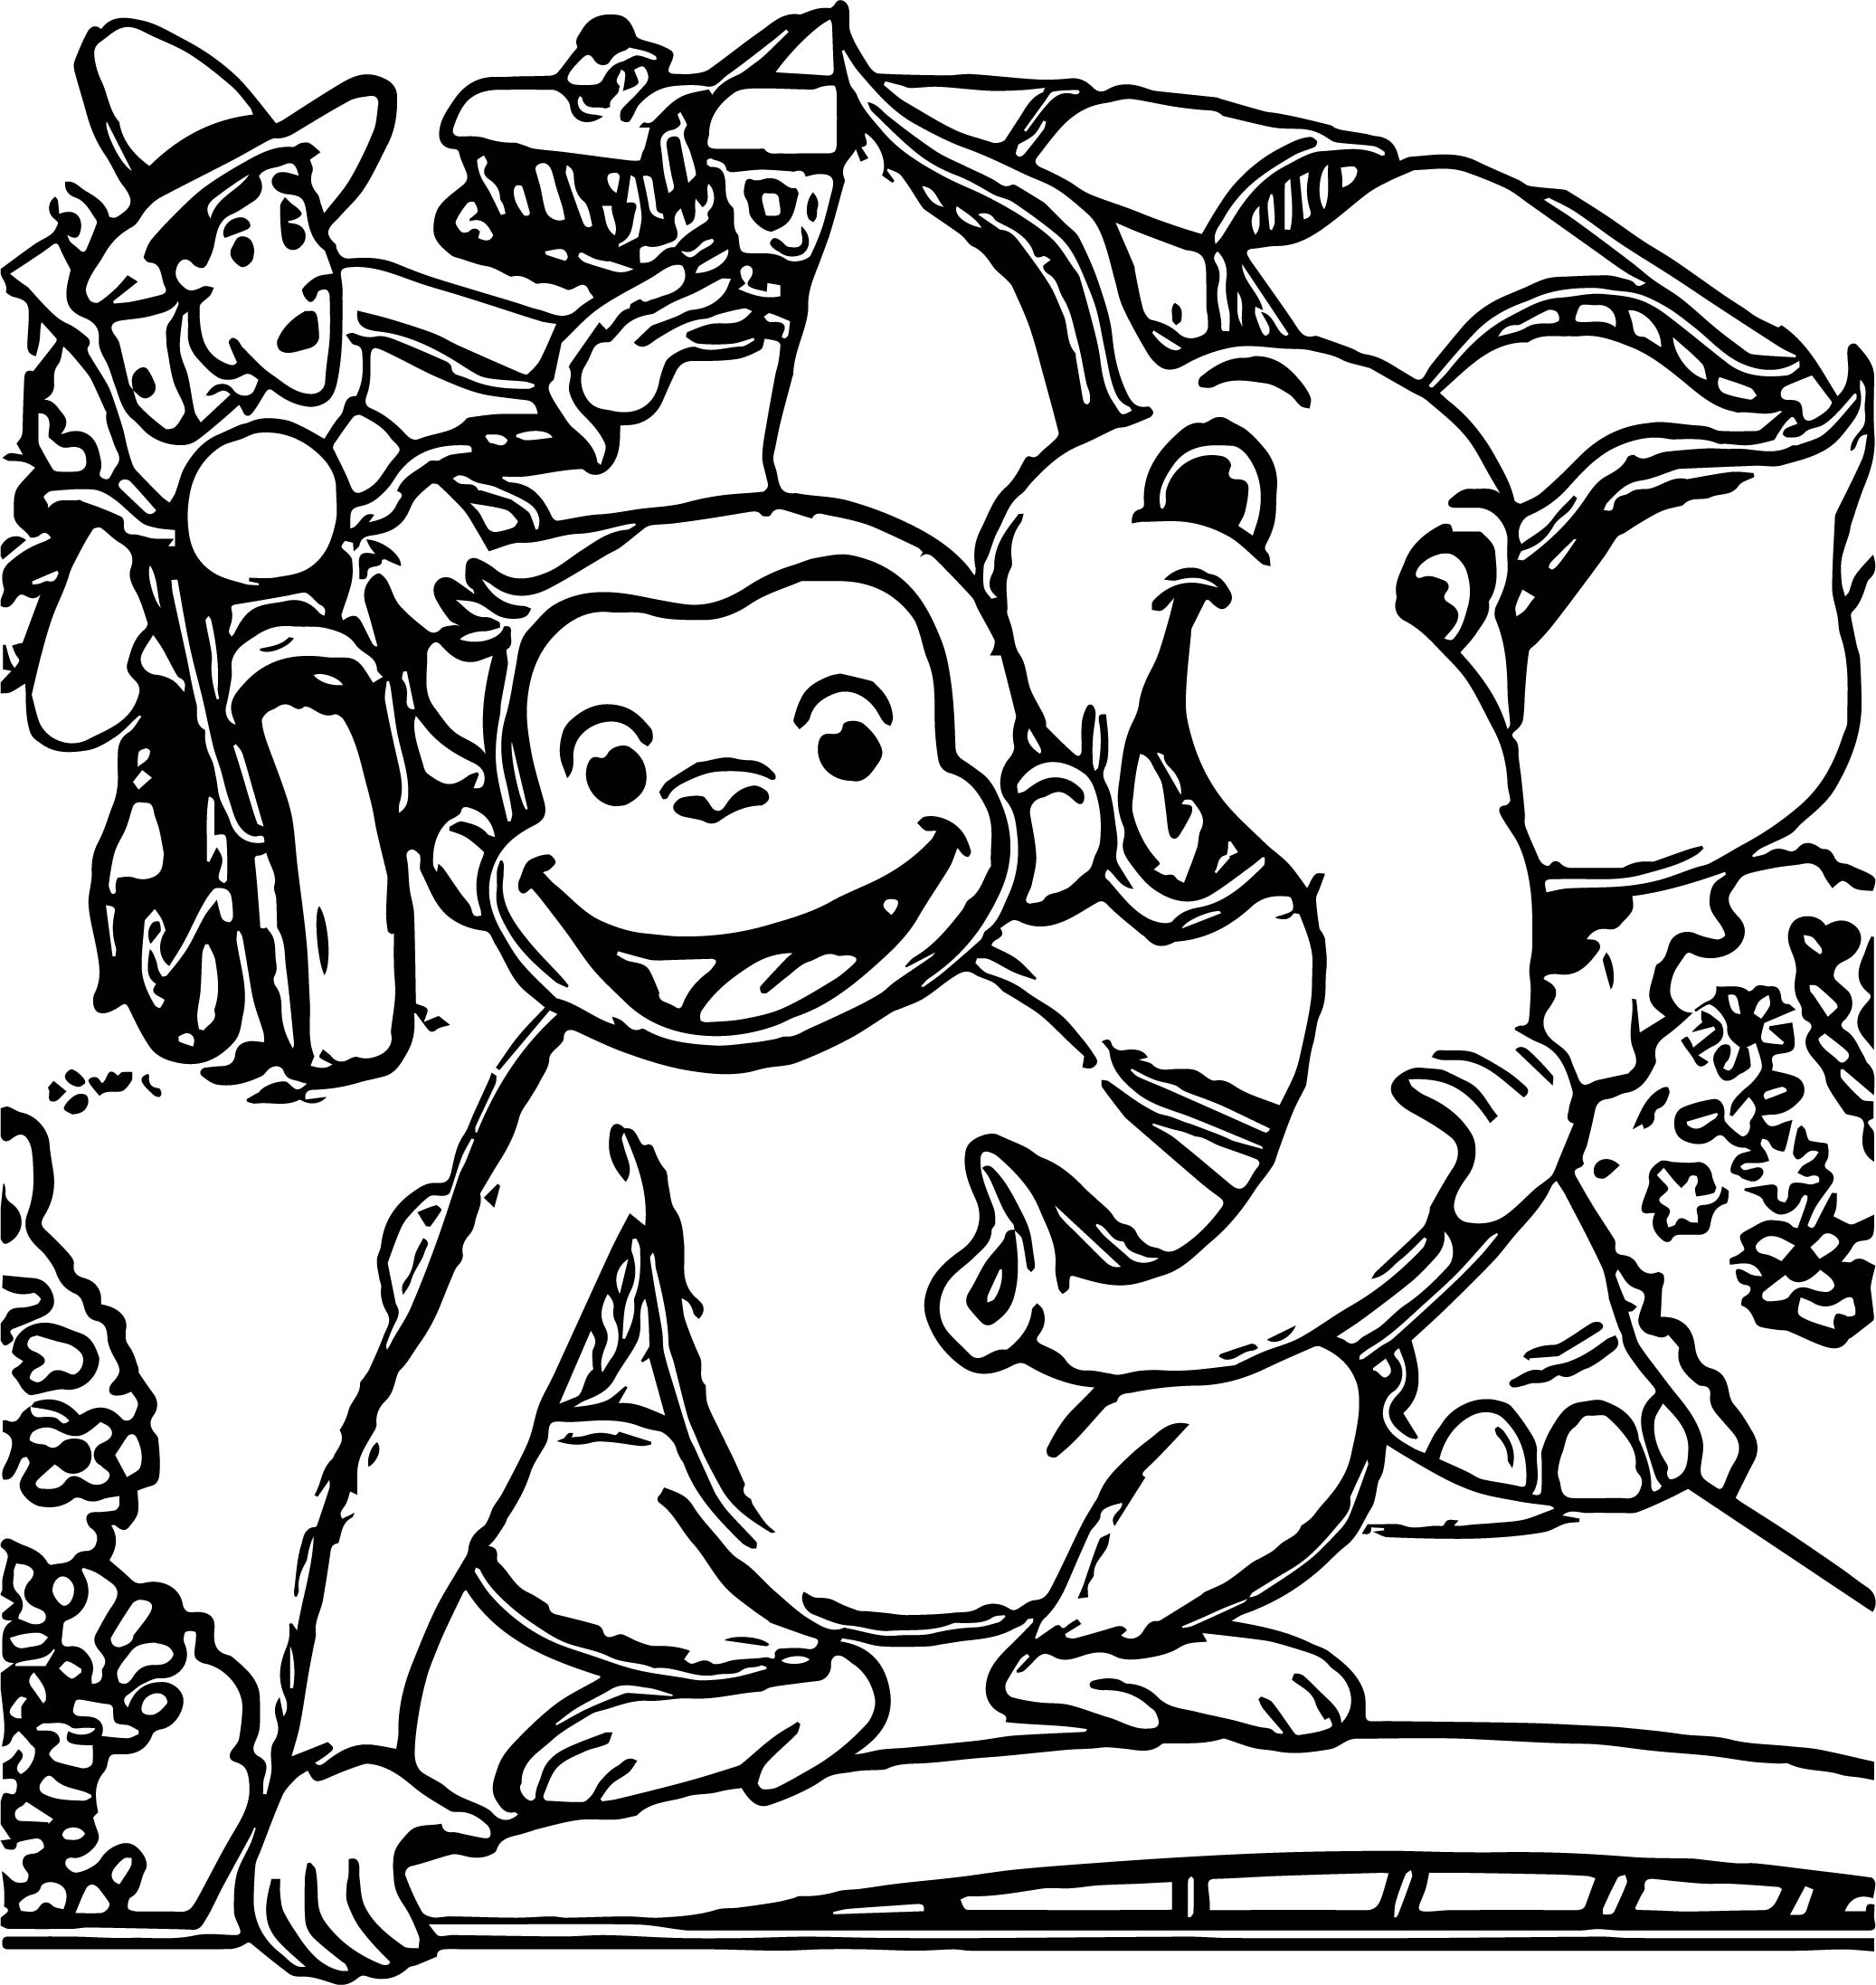 george of the jungle cartoon follow that monkey and elephant